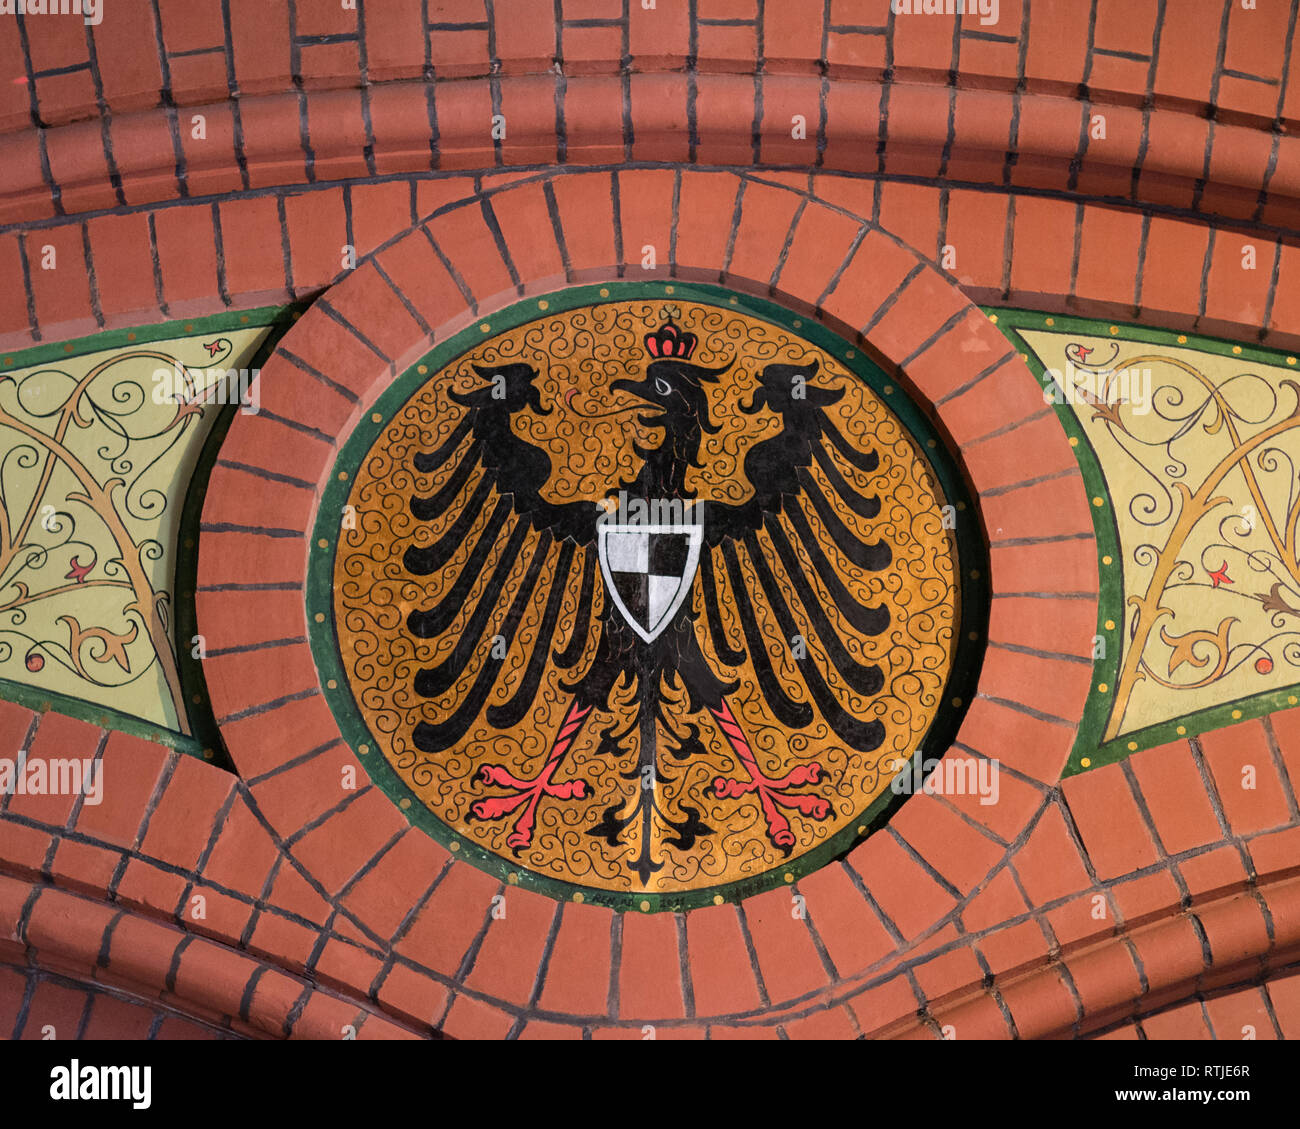 Prussian Coat of Arms with the black Prussian Eagle at Malbork Train station, Poland, Europe - Stock Image